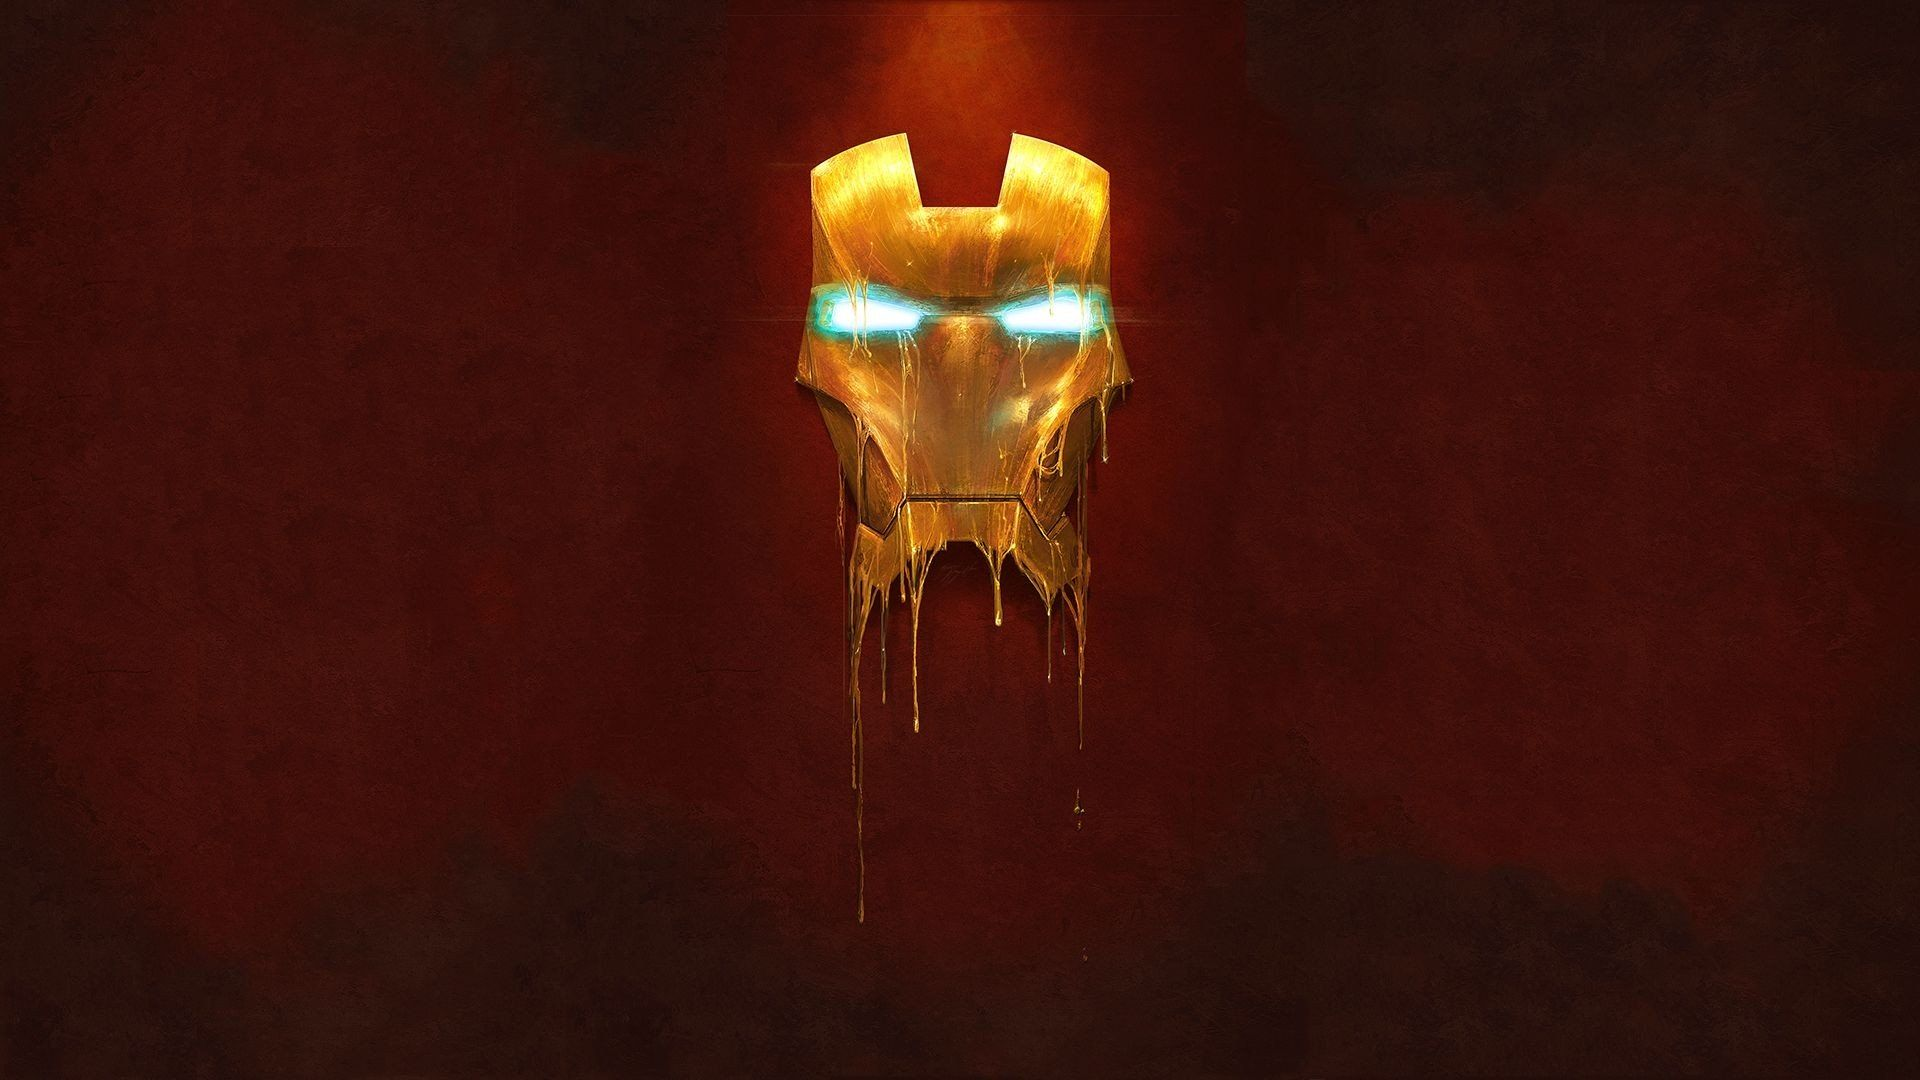 69 iron man wallpapers for free download in hd | wallpaper